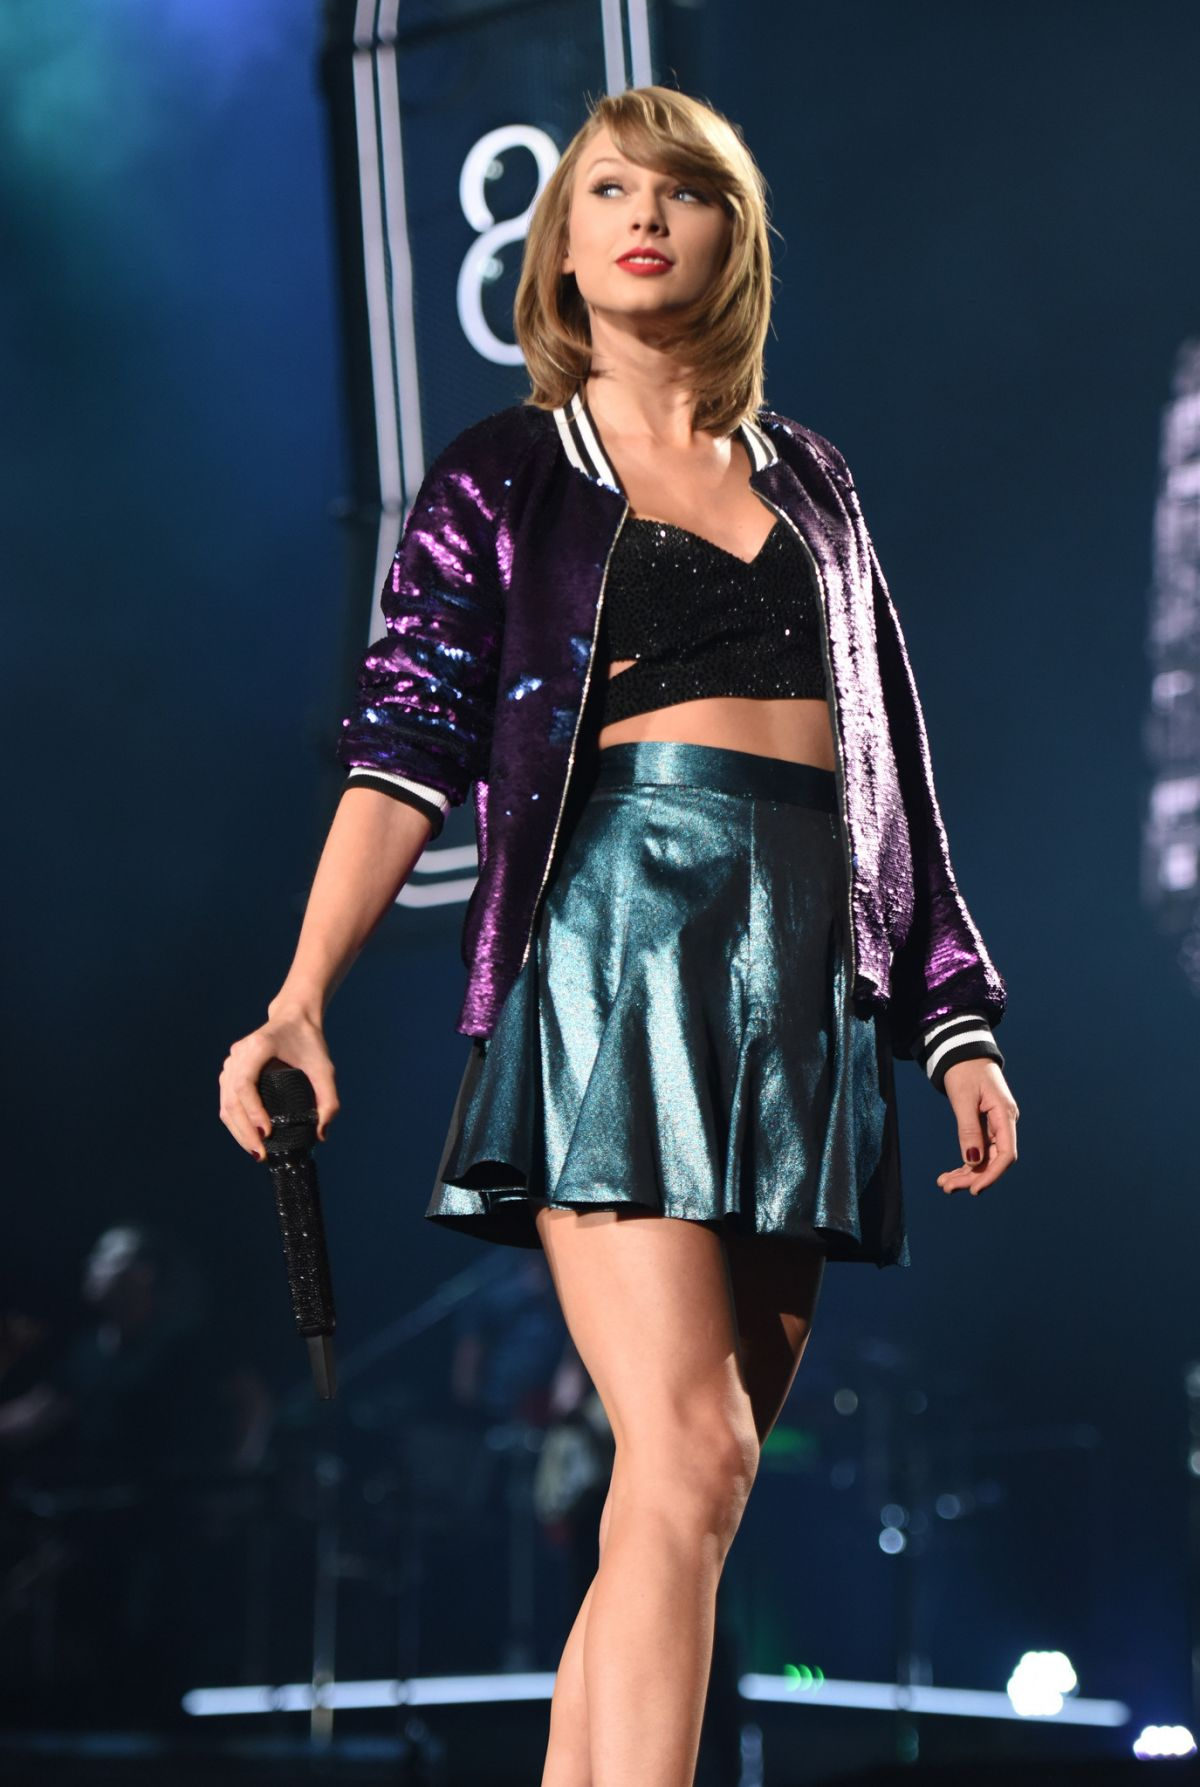 TAYLOR SWIFT Performs at 1989 World Tour in Miami 10/27/2015